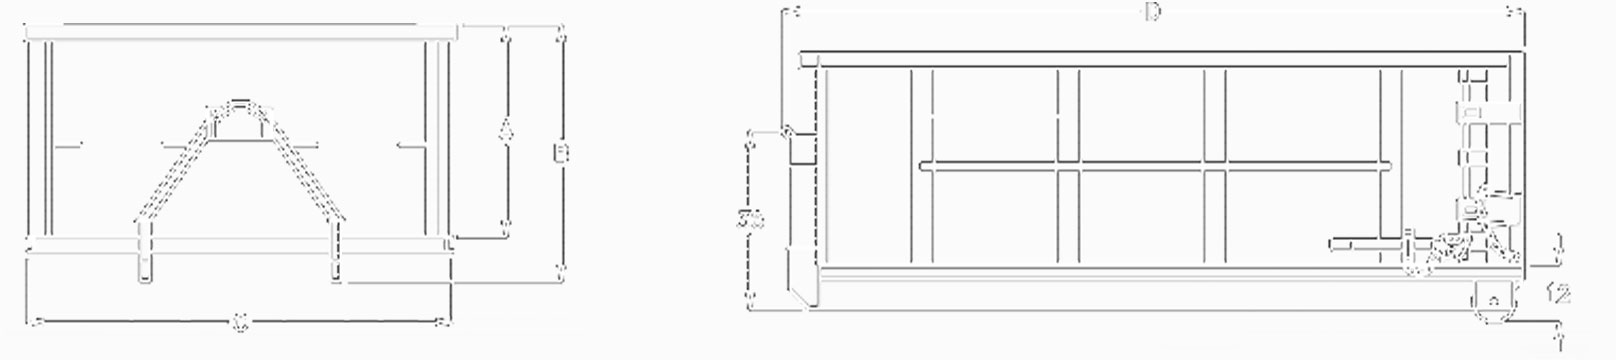 Rudco Hook Lift Container Dimensions